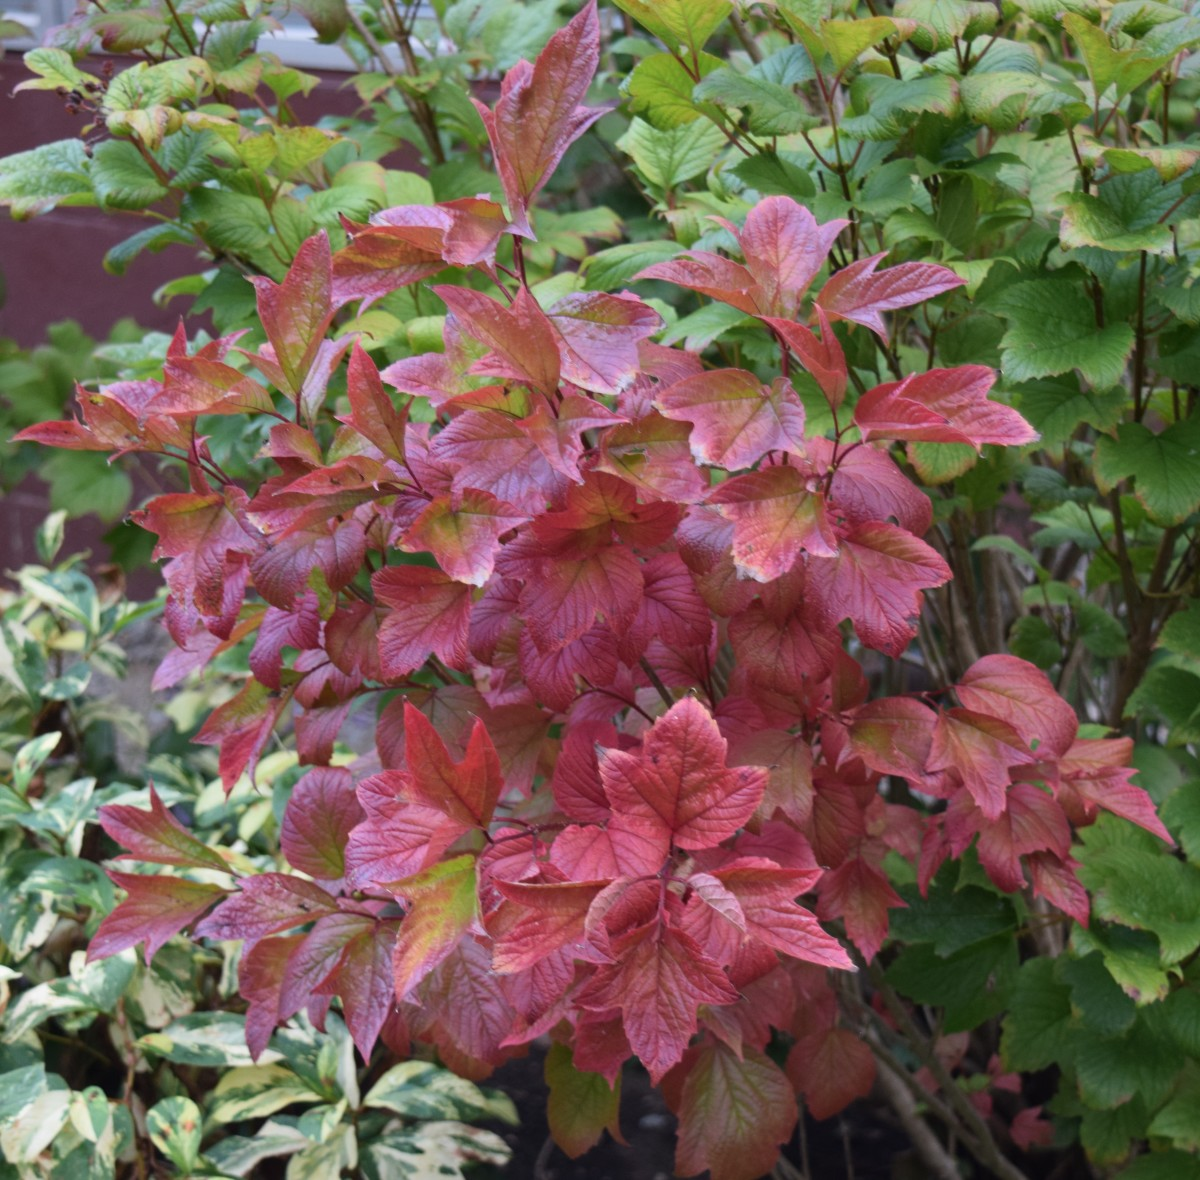 Viburnum Trilobum leaves changing color (center), Knotweed (lower left).